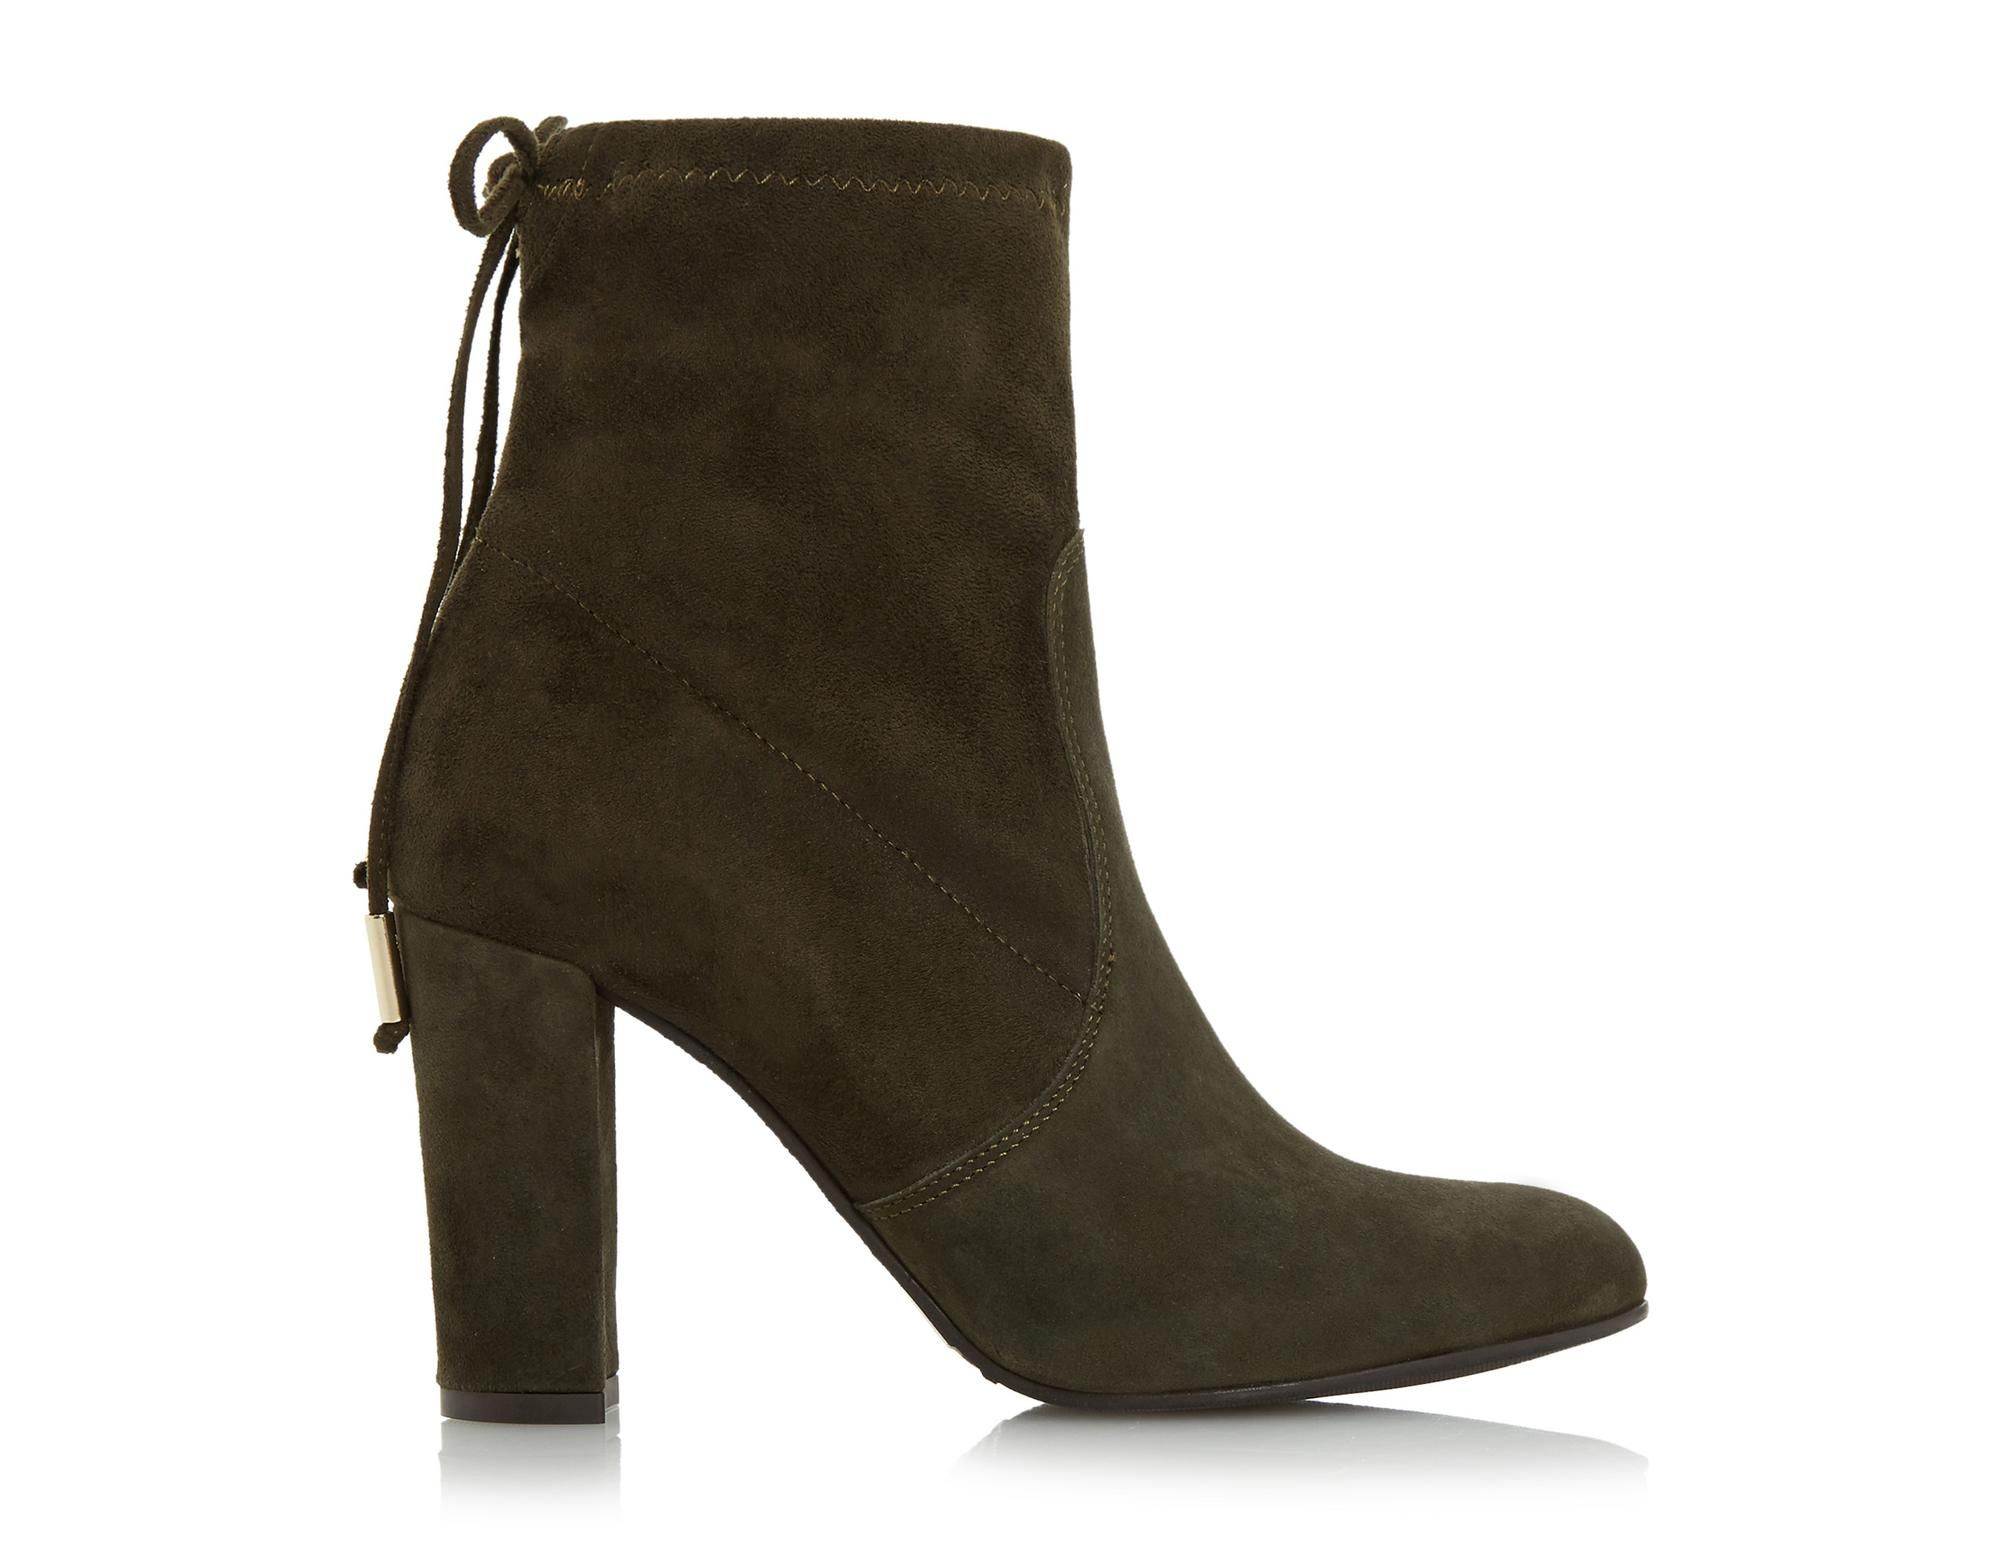 This chic ankle boot will add an instant glam to you day and night look. Featuring a high block heel and tie up detail with Dune branded metal tips. Style with an oversized jumper and midi skirt for a trendy finish.